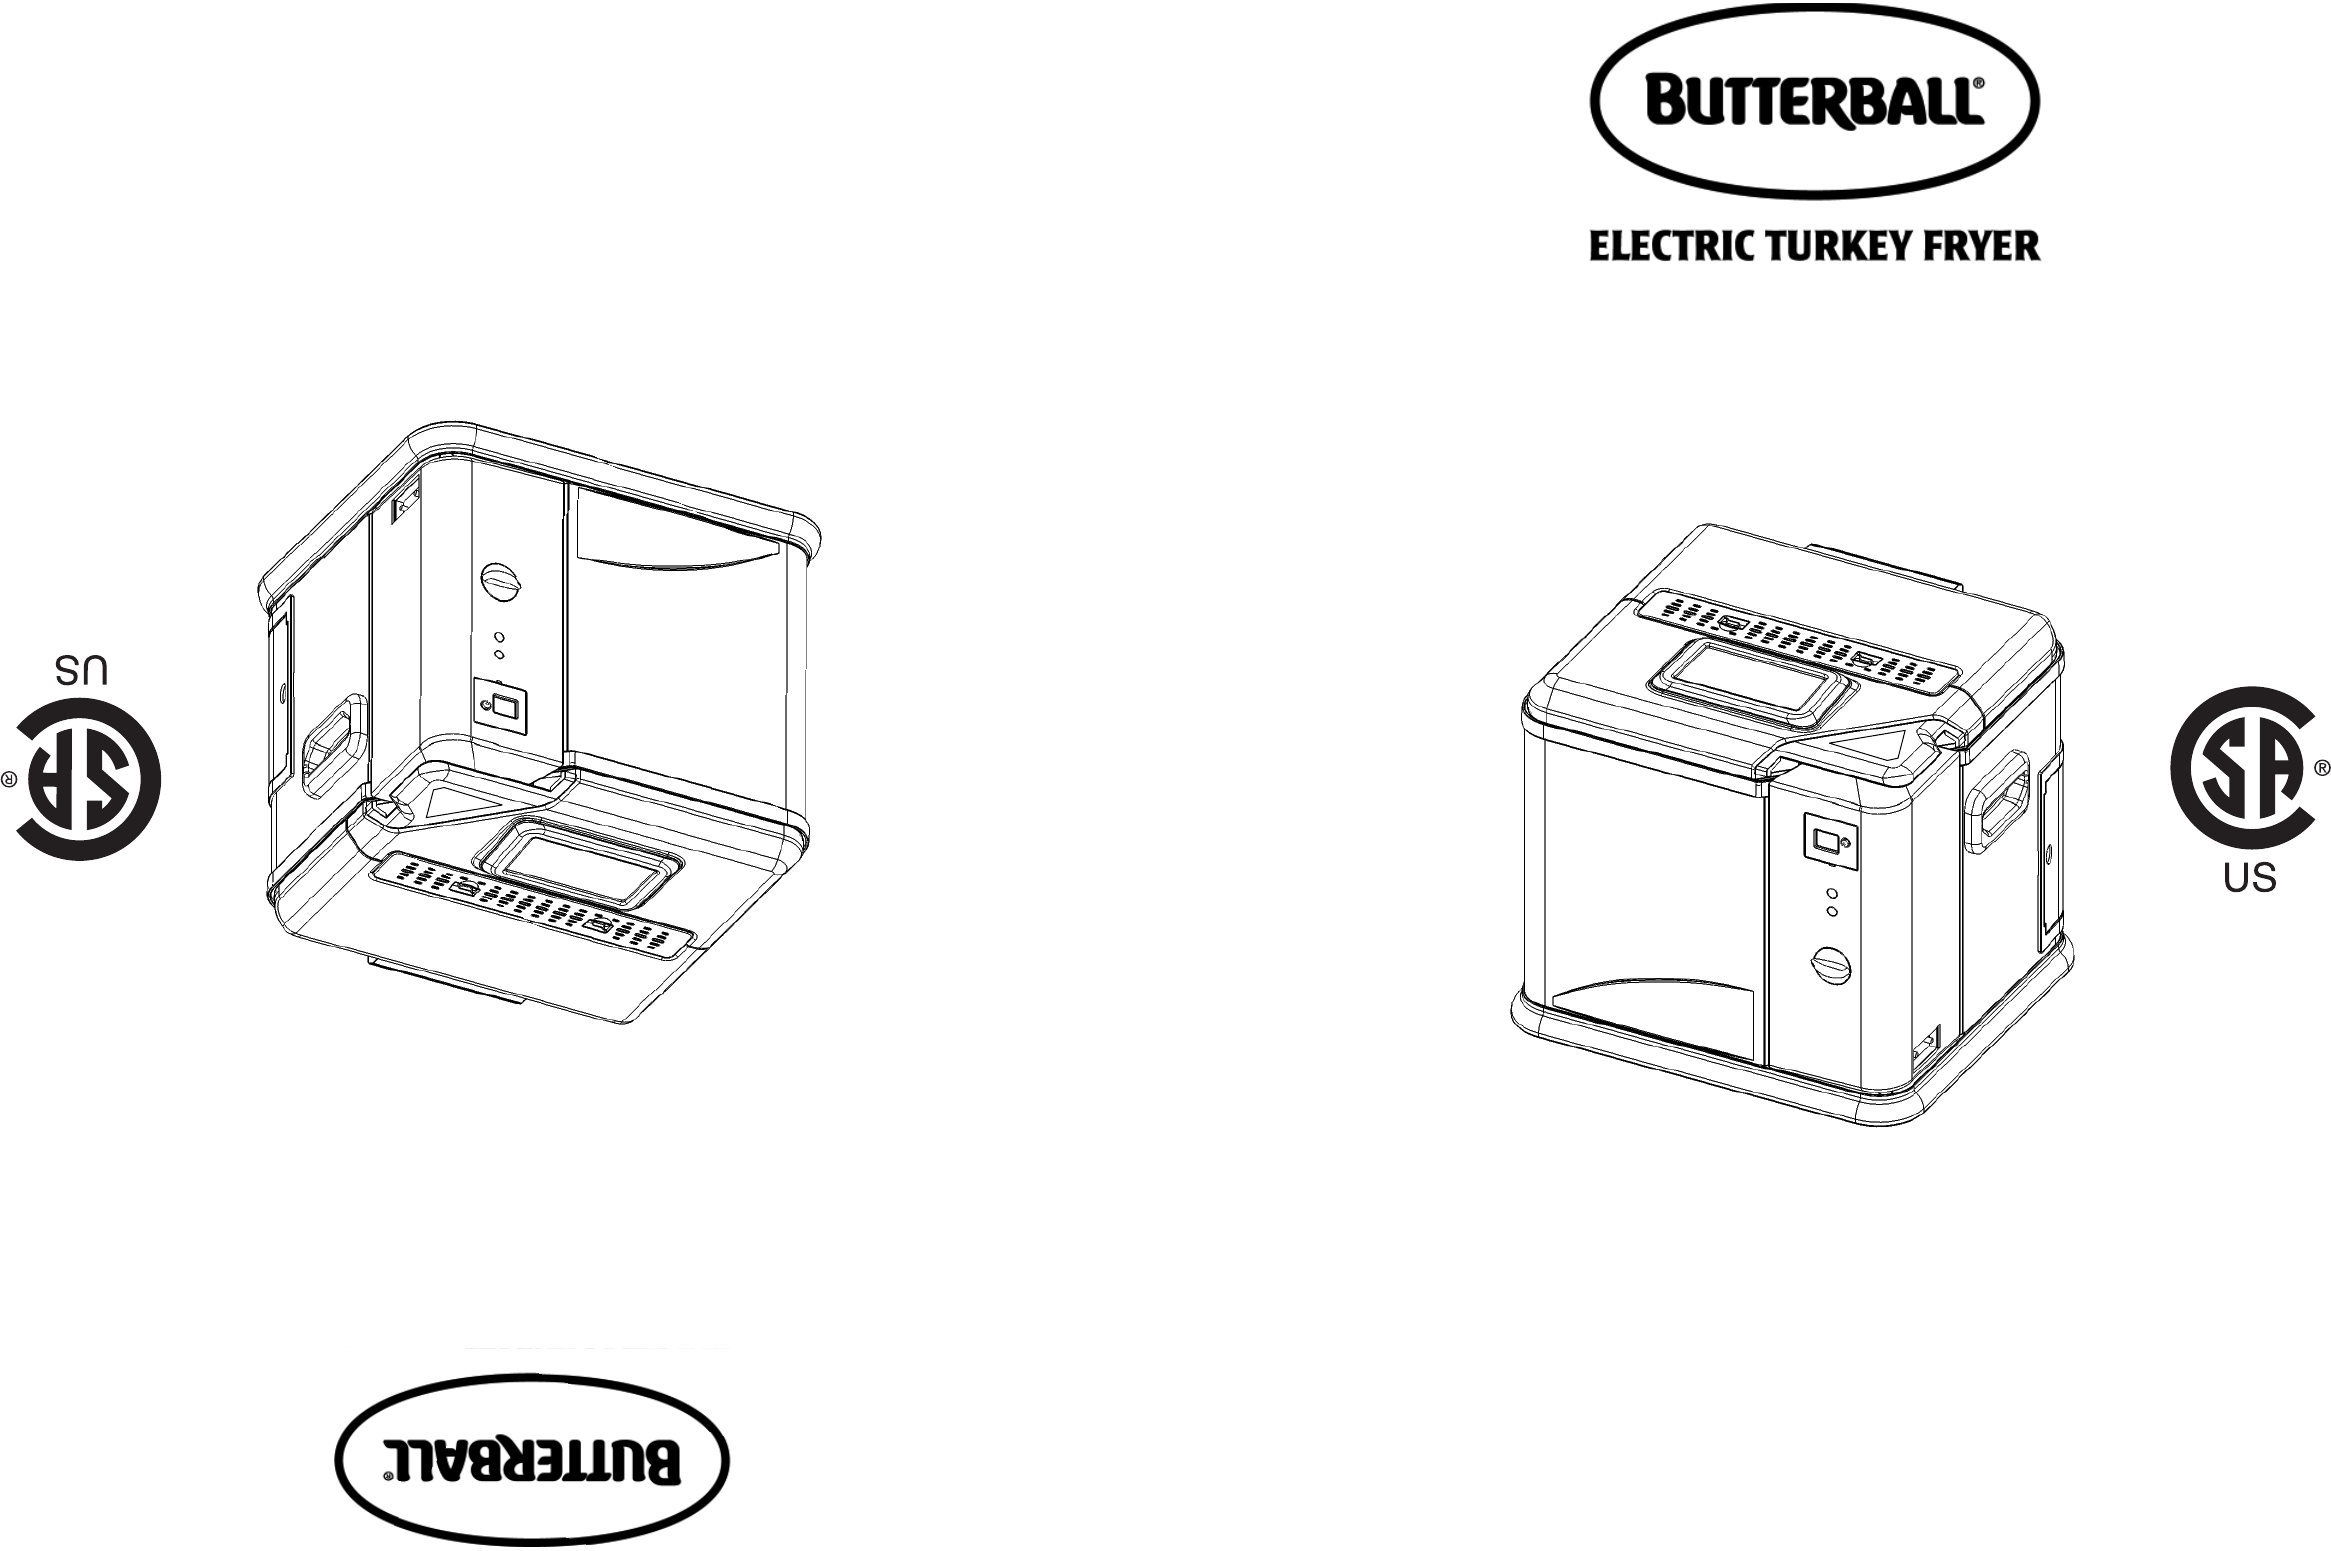 Masterbuilt Turkey Fryer 20010210 User Guide